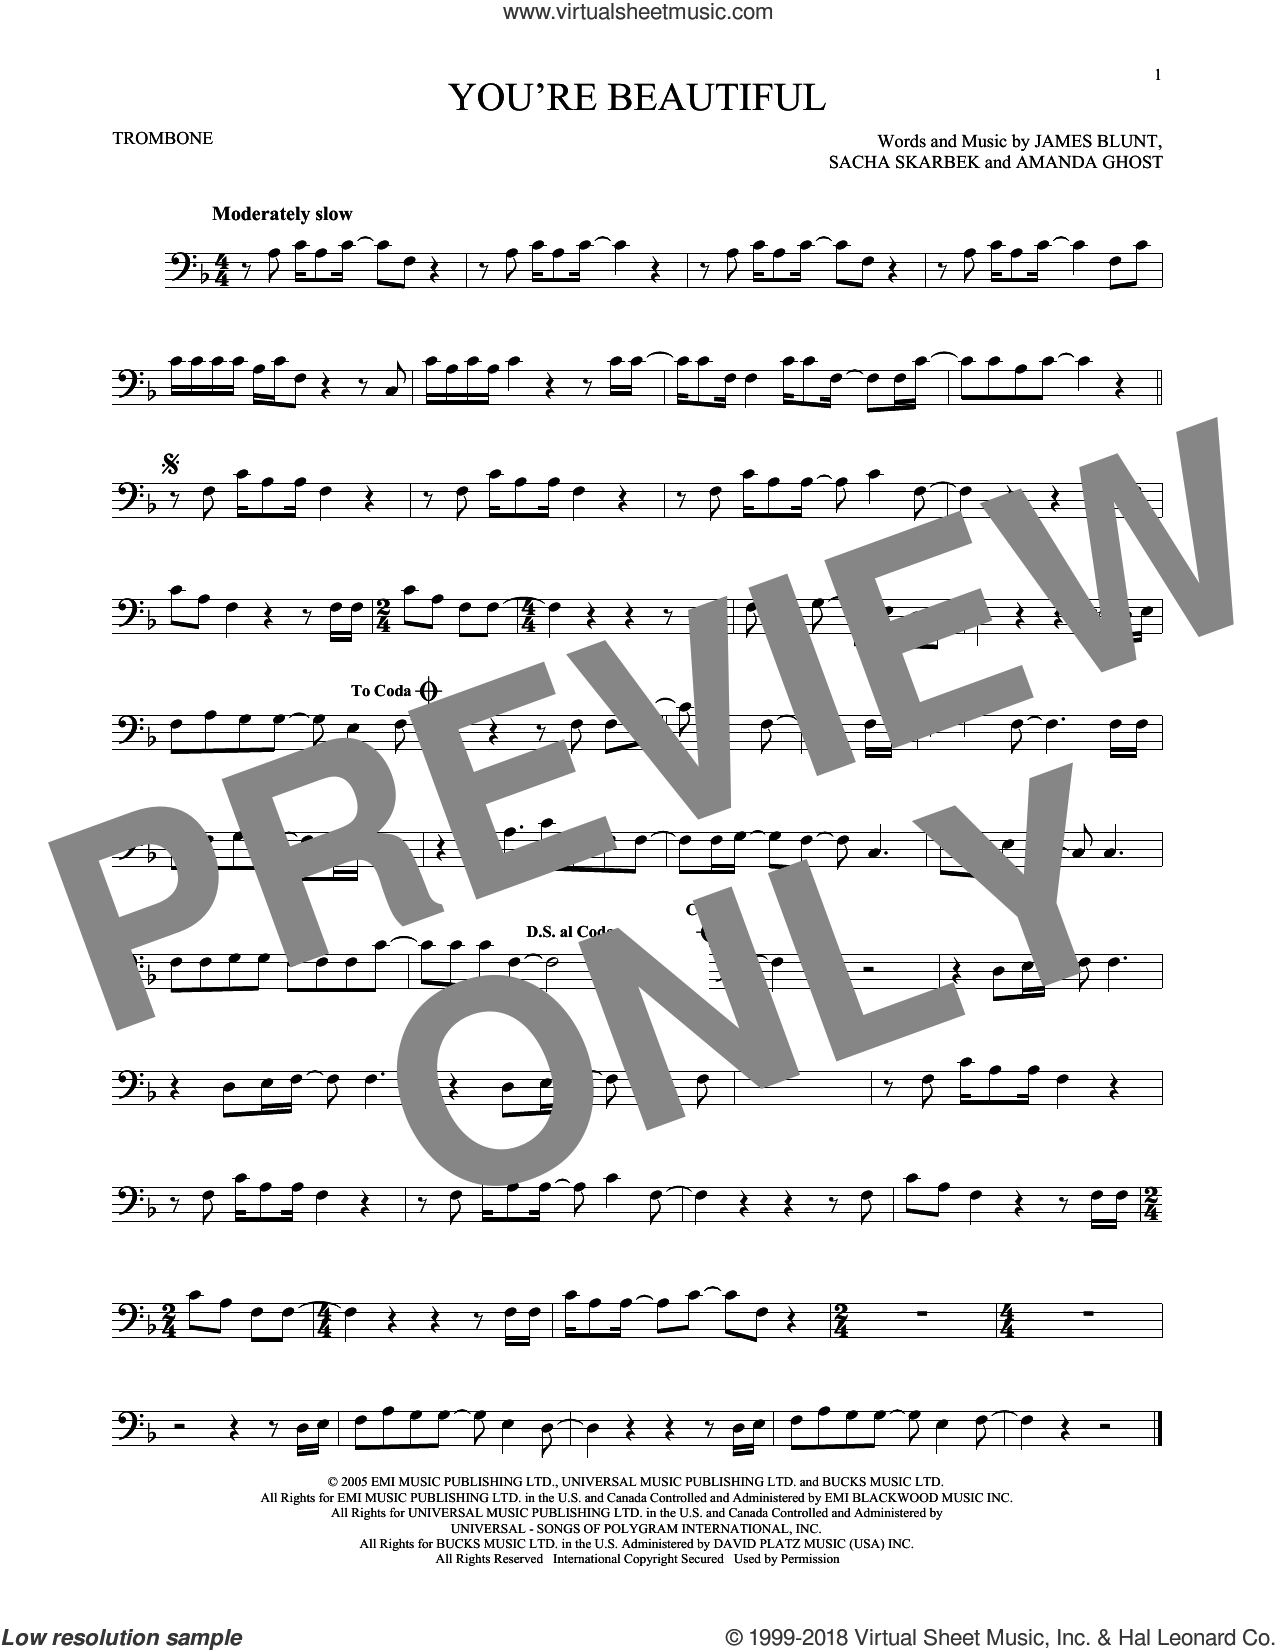 You're Beautiful sheet music for trombone solo by James Blunt, Amanda Ghost and Sacha Skarbek, intermediate skill level